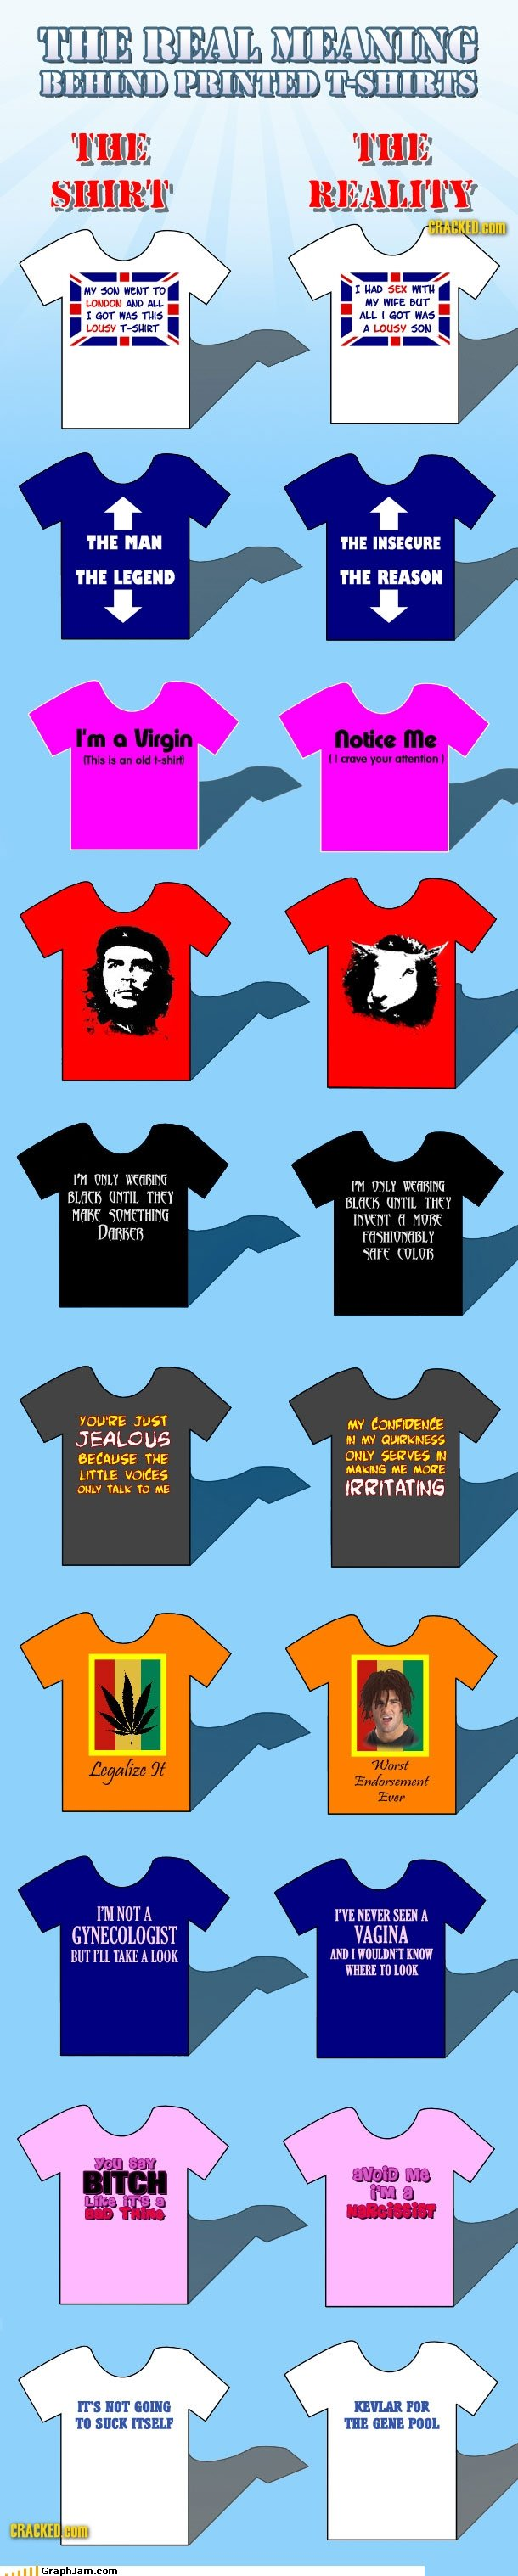 T shirts. to thumb or not to thumb..that is the question. aw HEW TO ' Lama an AU. I mar was mt: I Ill tfor. ifinllt JUST ESE Eh USE THE LITTLE Duh' TALK tte Til